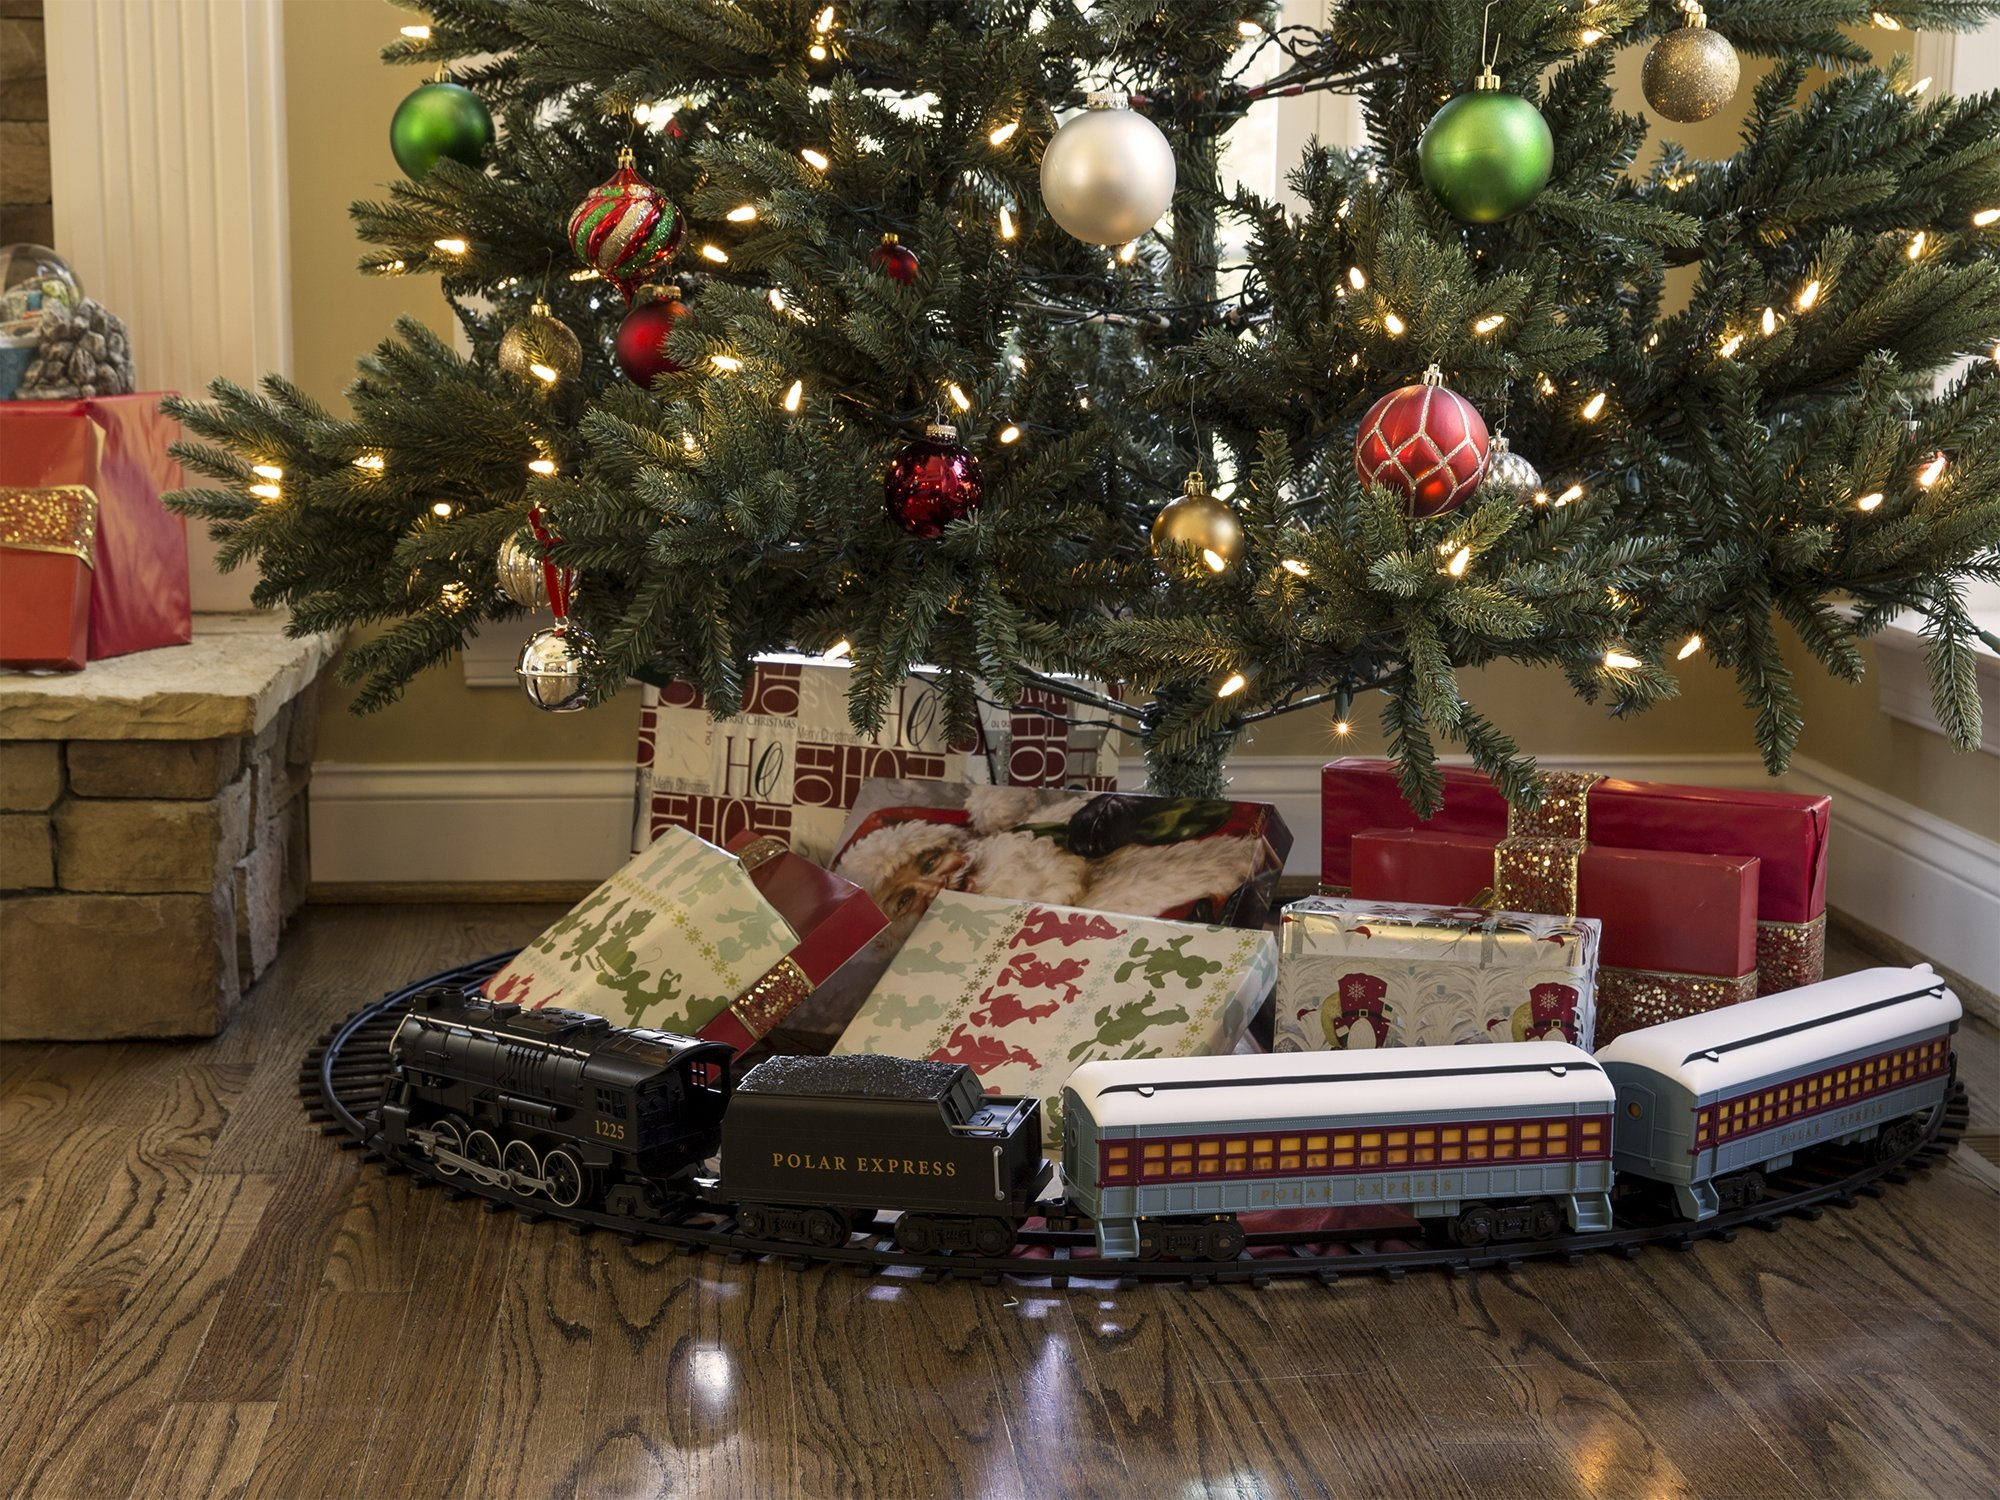 Lionel Polar Express Train Set For Around The Christmas Tree